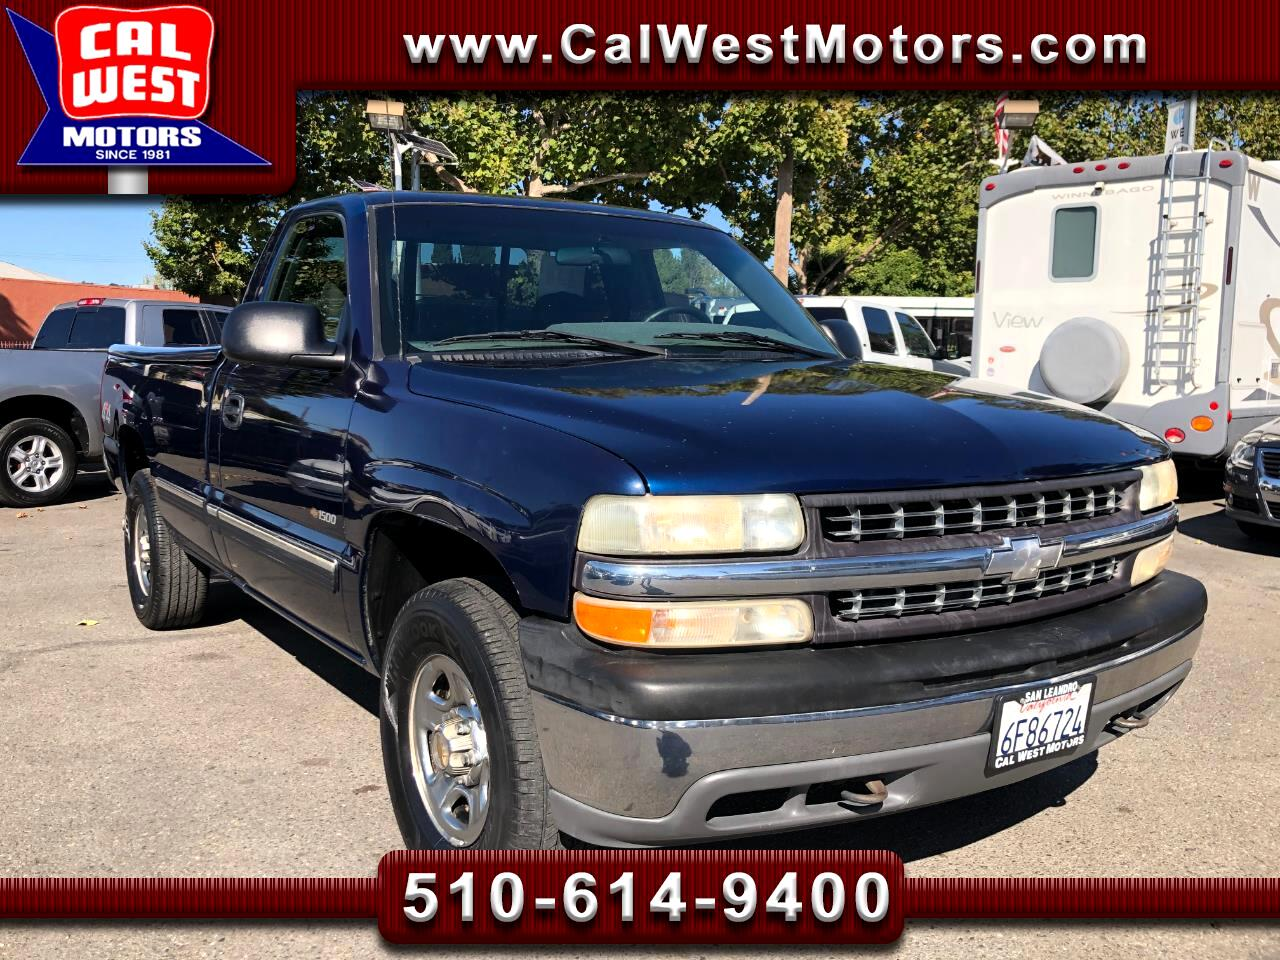 2000 Chevrolet Silverado 1500 4X4 Reg Cab 8FT VeryClean 1Owner GreatMtnce